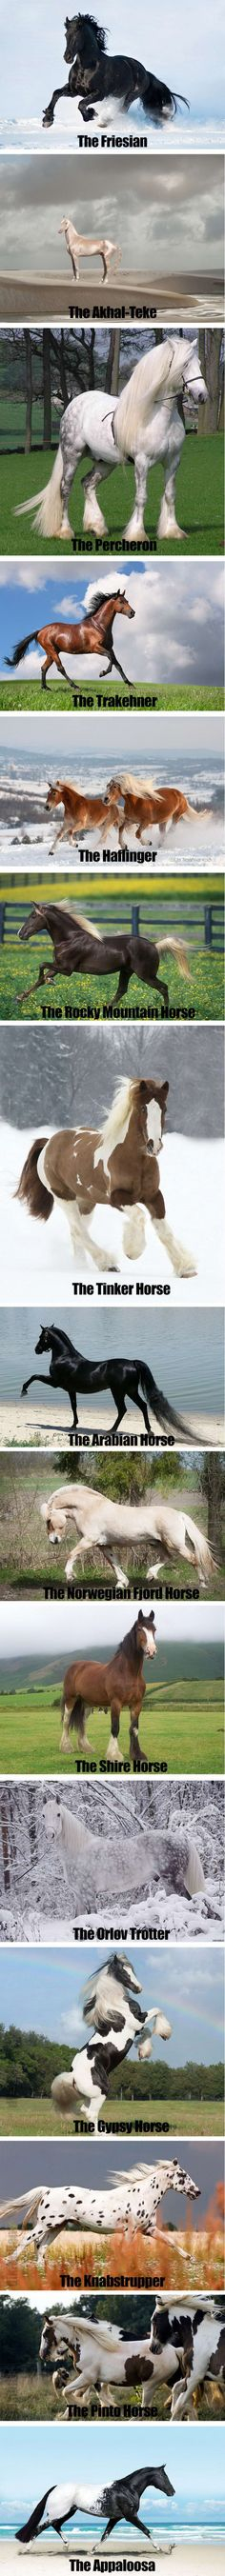 Breathtakingly Beautiful Horses - 9GAG